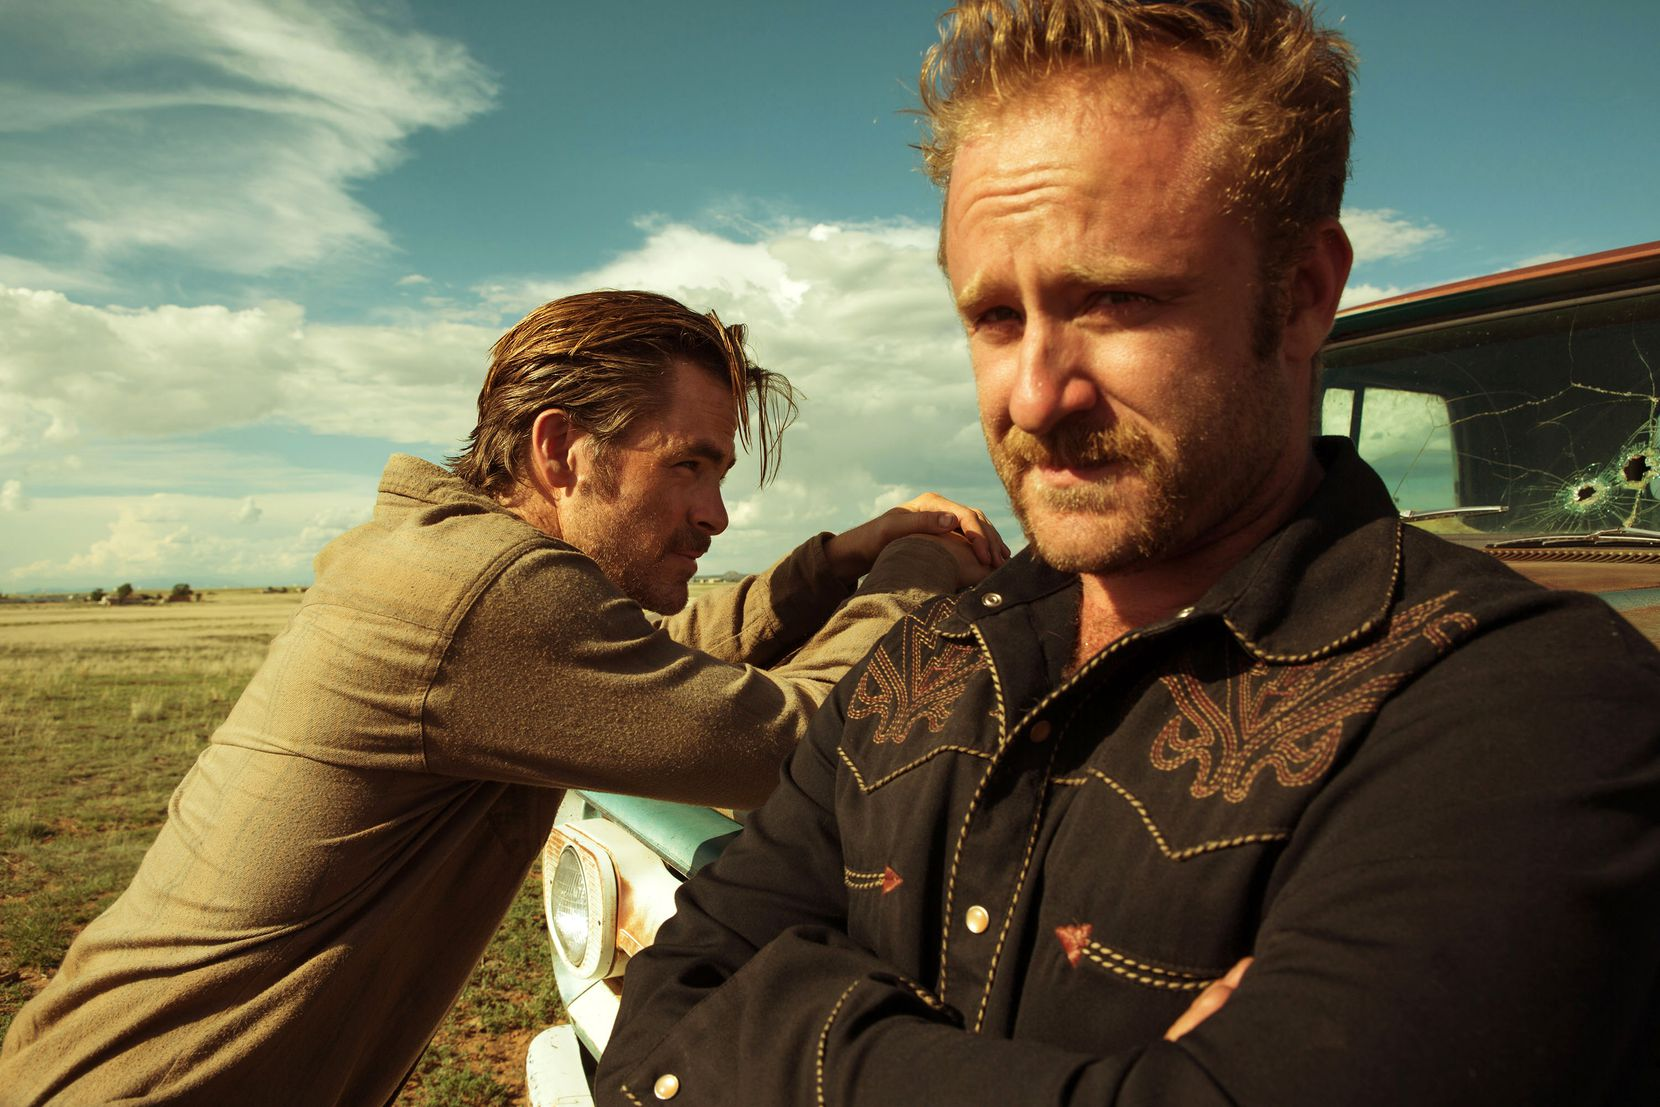 """Chris Pine and Ben Foster in a scene from the movie """"Hell or High Water"""" directed by David Mackenzie."""